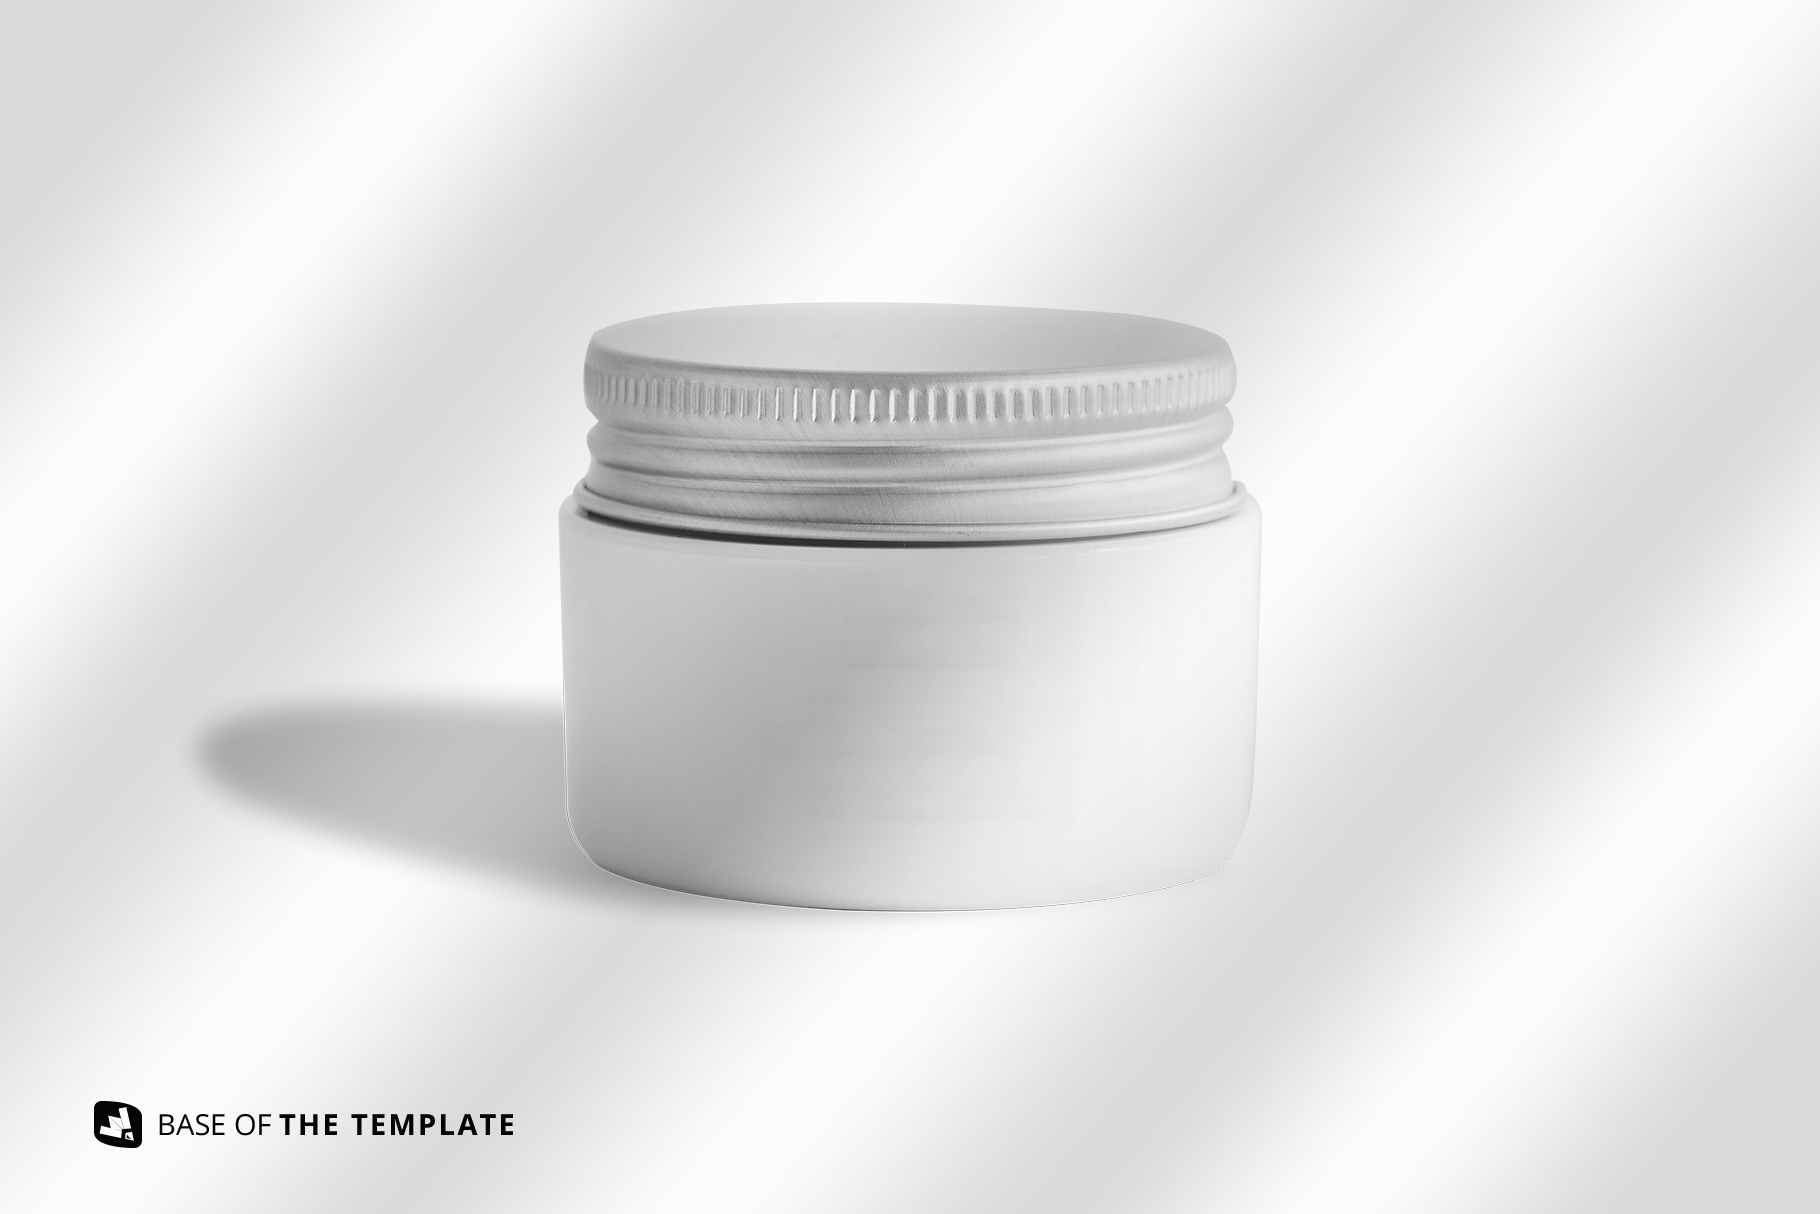 base image of the glass cosmetic jar packaging mockup